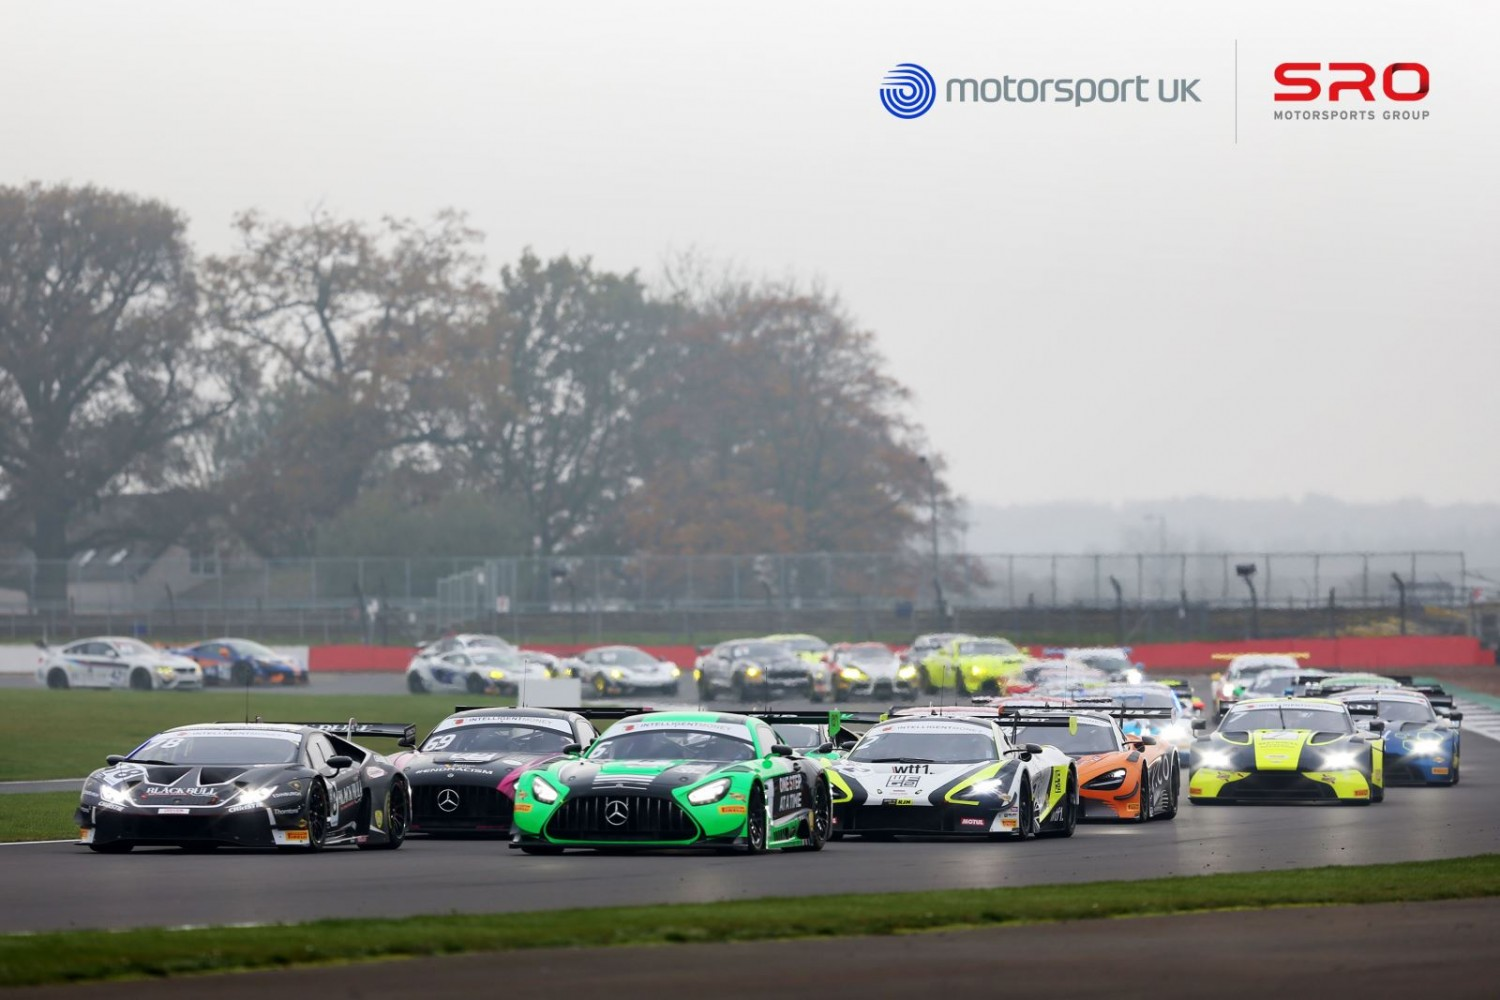 SRO Motorsports Group extends long-running Intelligent Money British GT Championship partnership with Motorsport UK